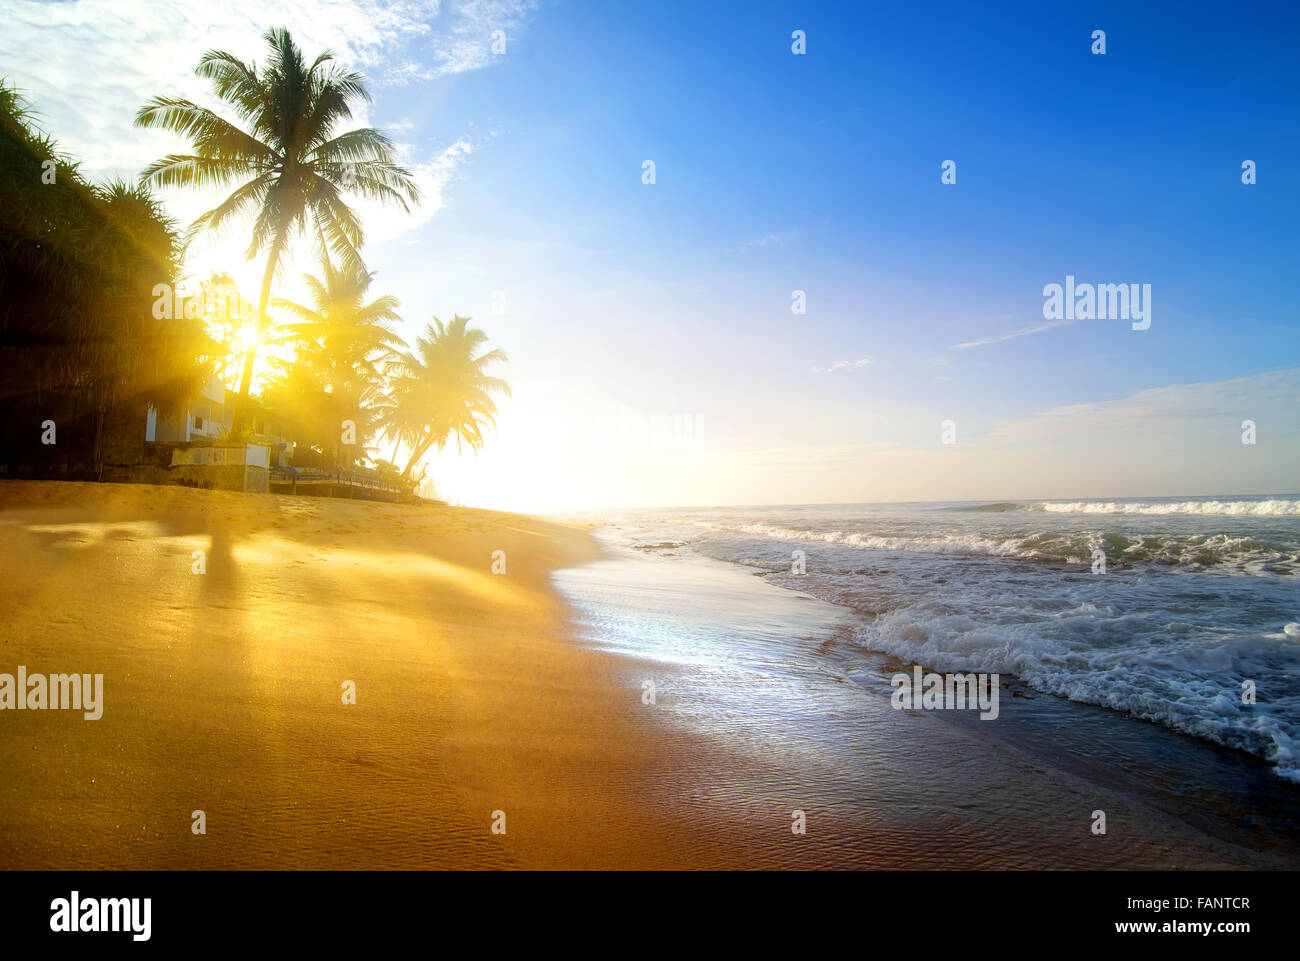 Palms on the sandy beach near ocean at sunrise - Stock Image